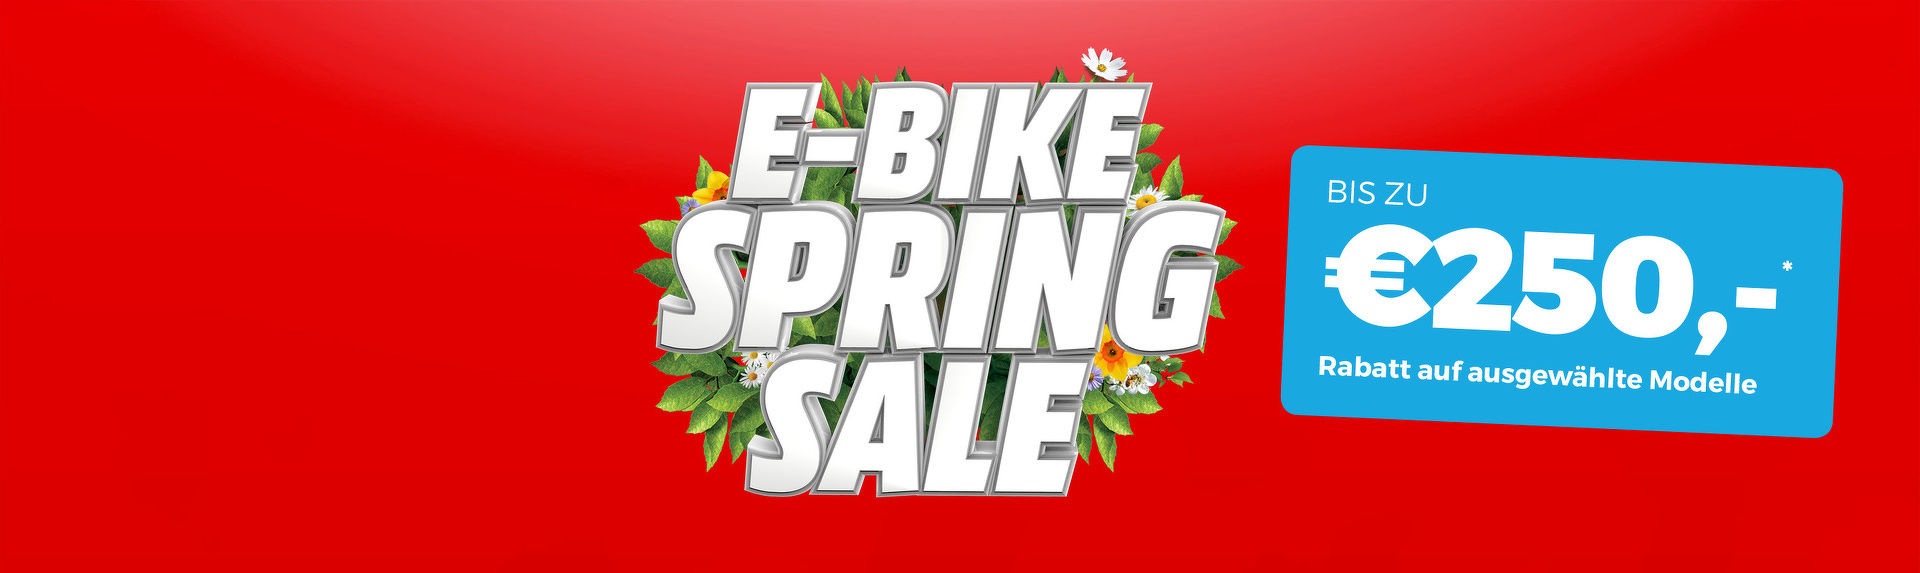 Stella E-Bike Spring Sale!